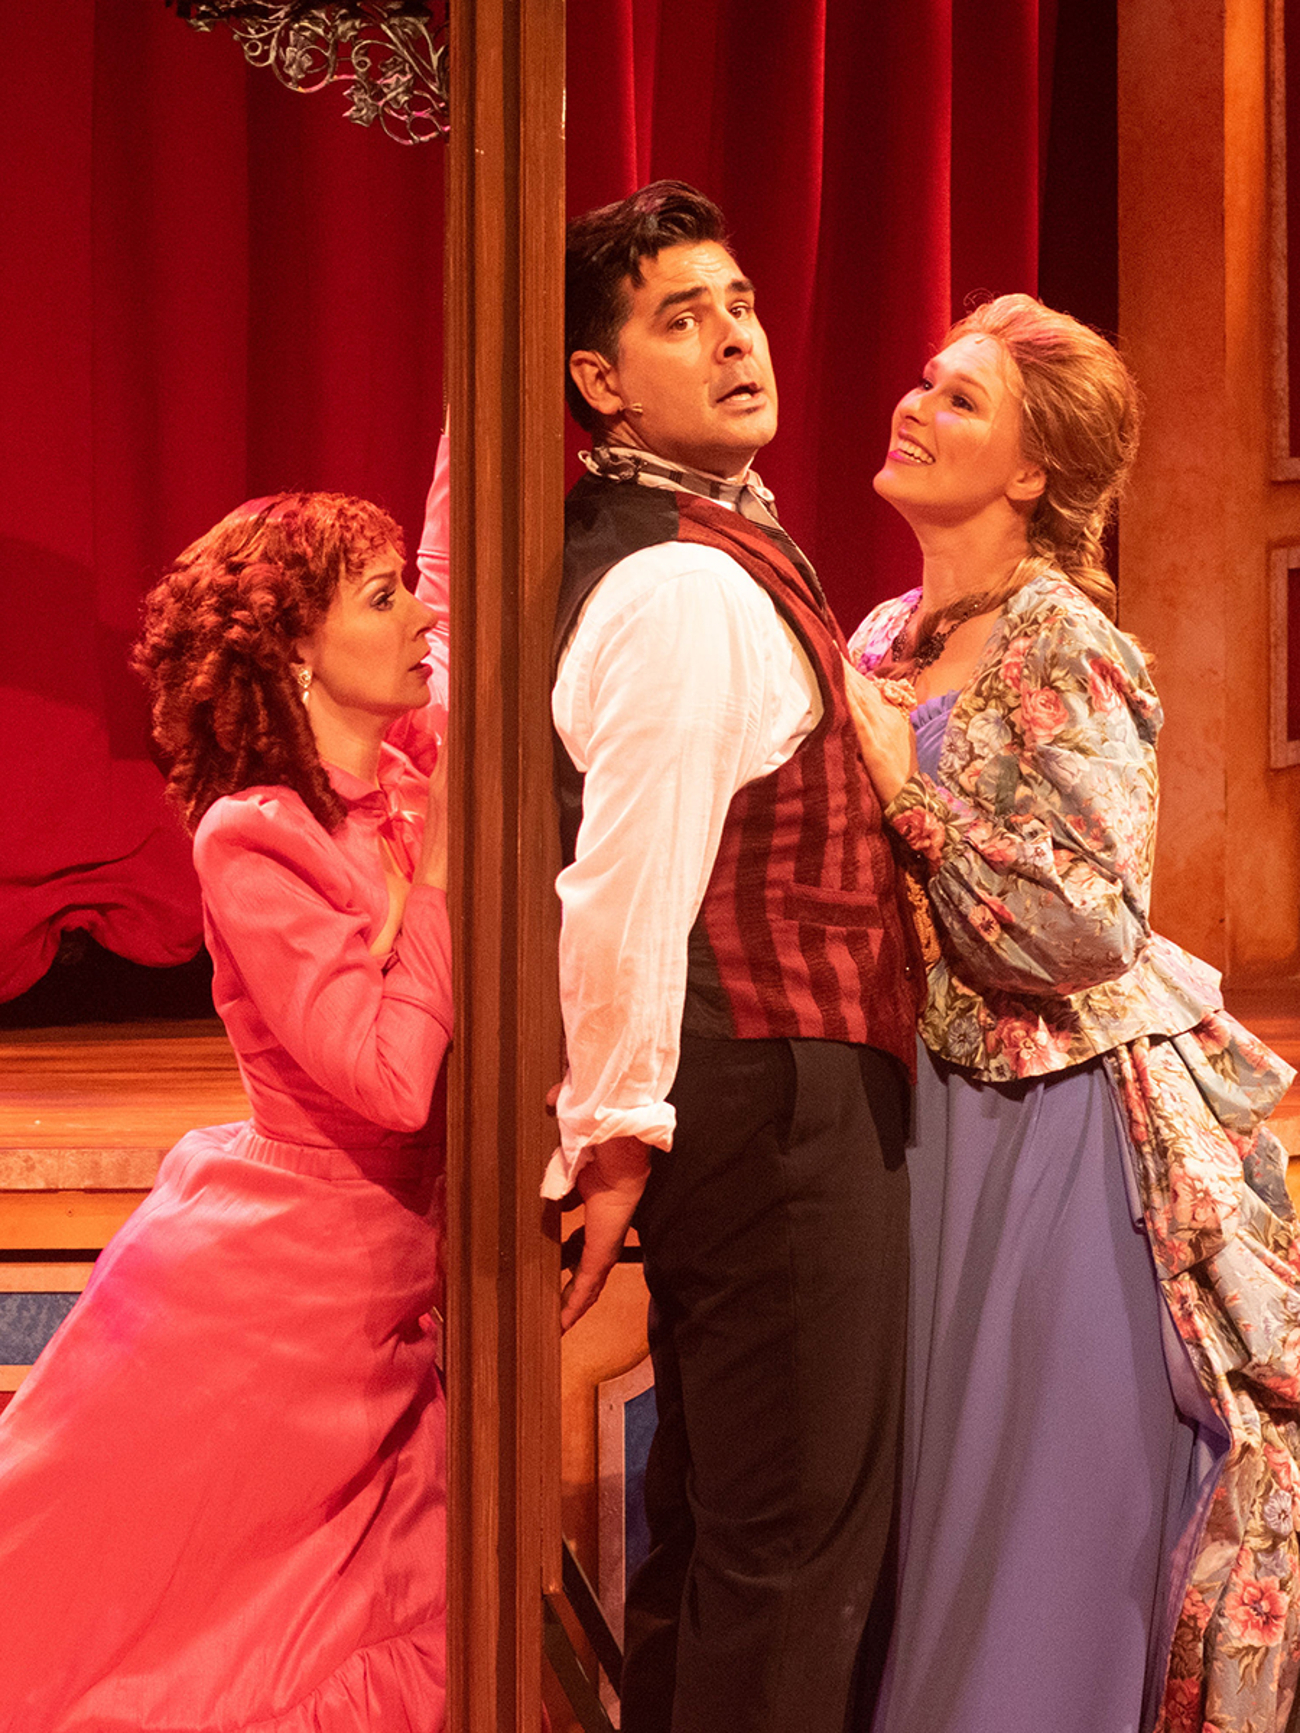 BWW Review: A GENTLEMAN'S GUIDE TO LOVE AND MURDER at Solvang Festival Theatre